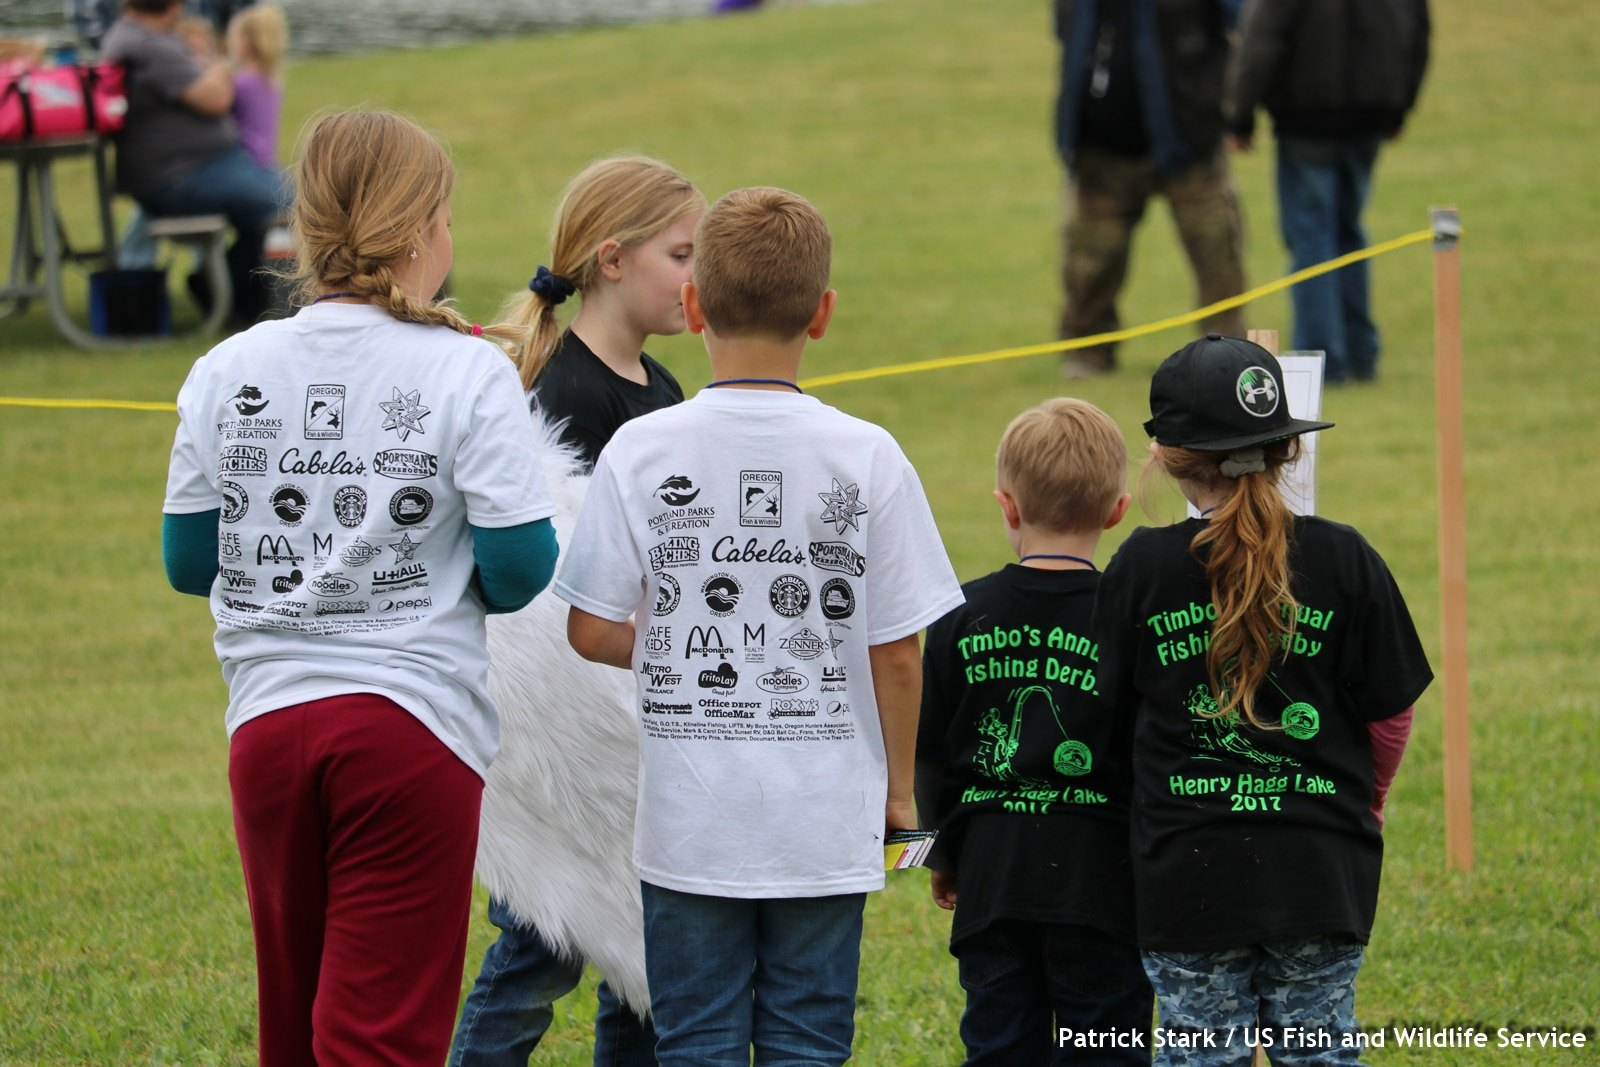 Im-Hooked-Events-at-Hagg-Lake-IMG_1419-by-Patrick-Stark-USFish_WildlifeService